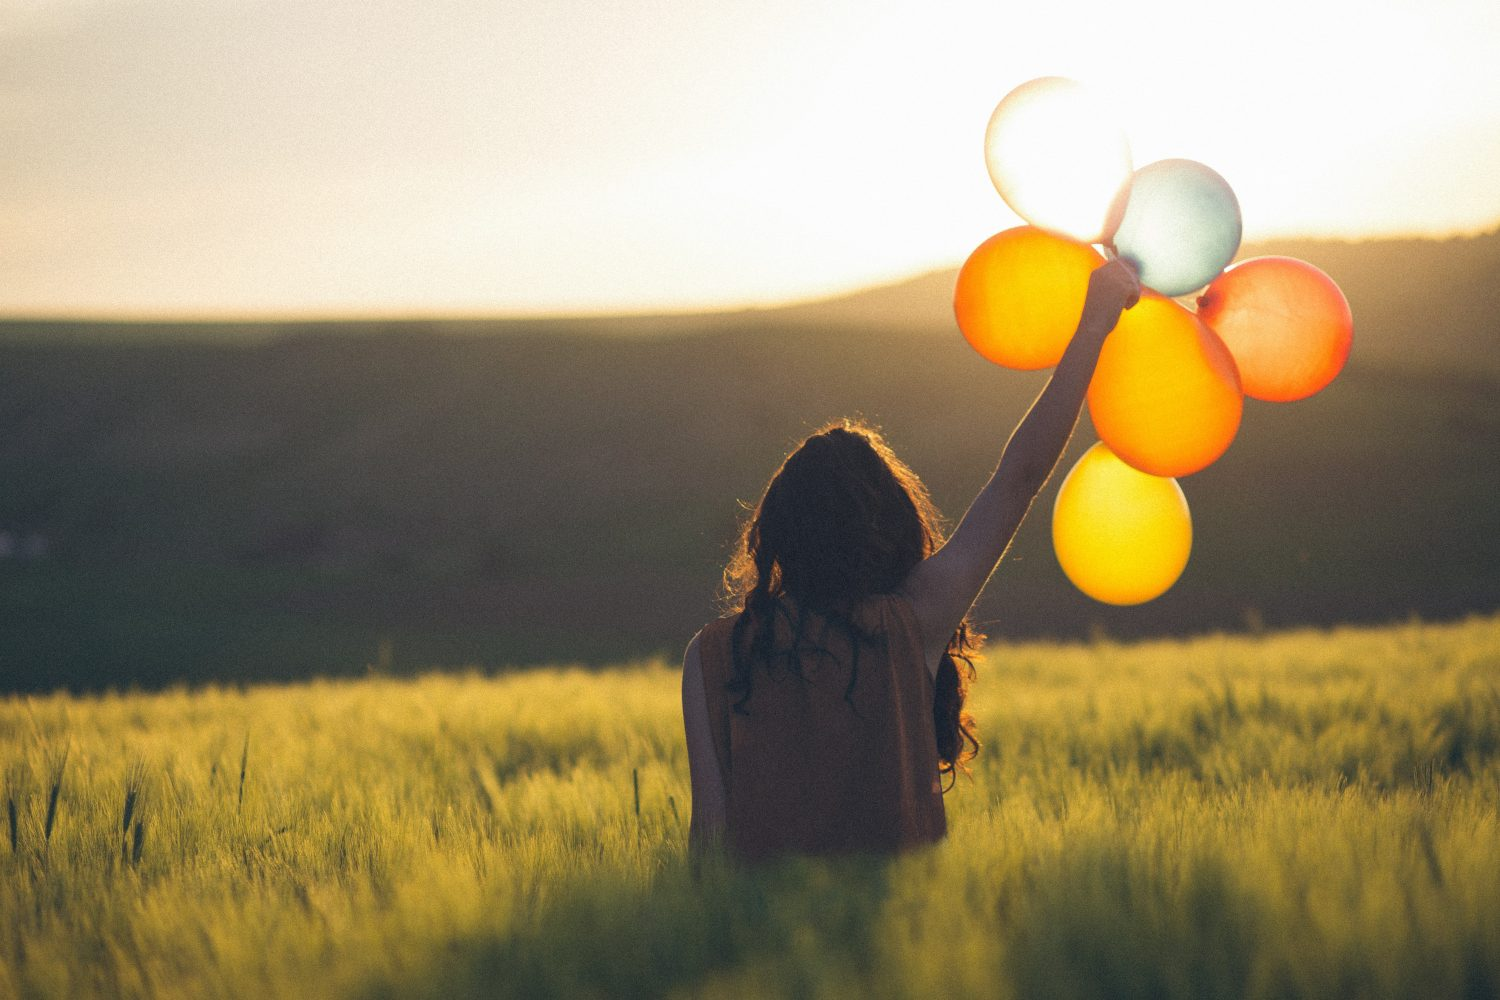 Girl holding balloons in field creating a happiness spike